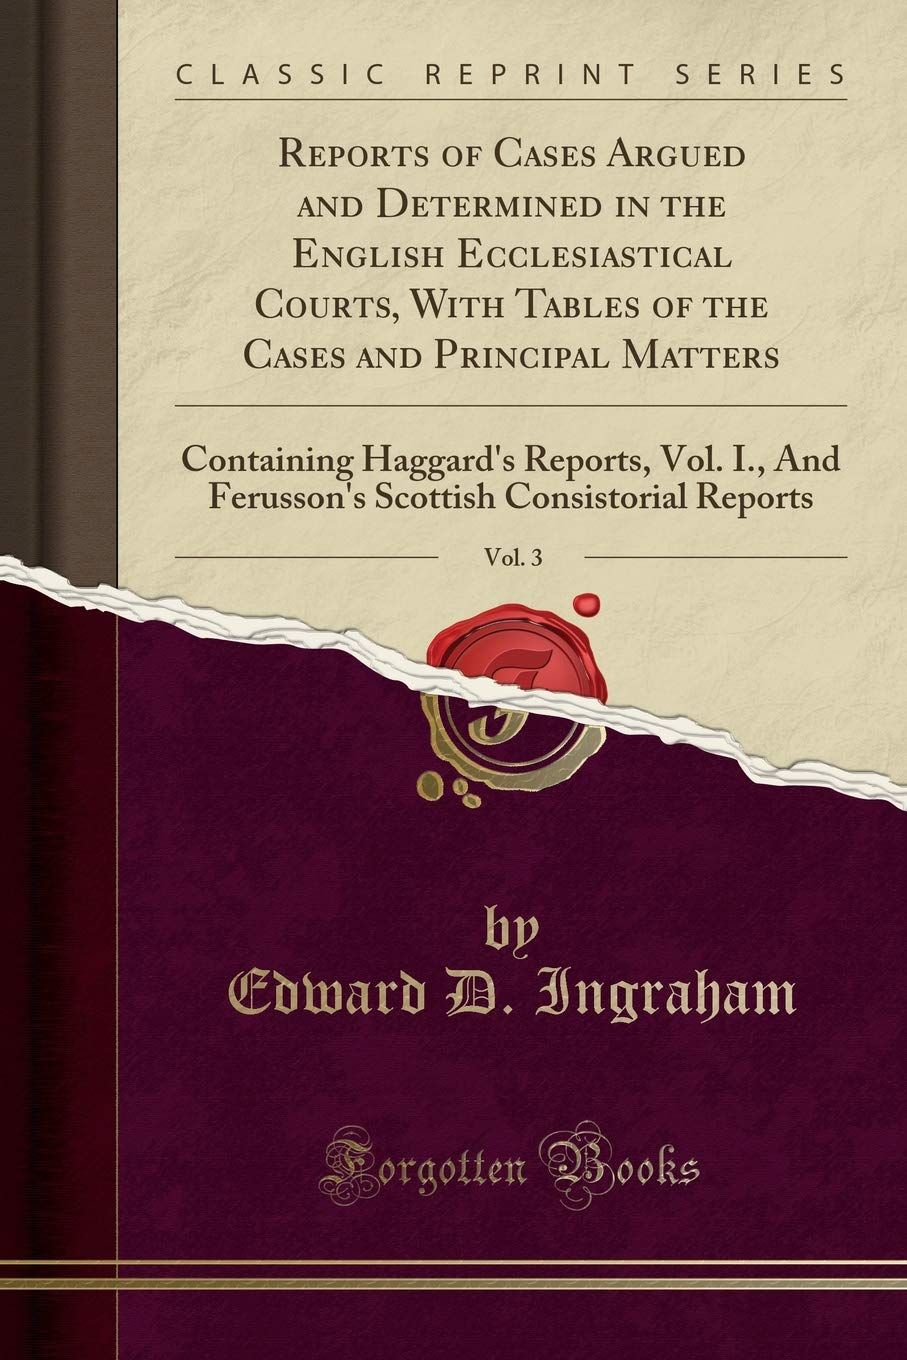 Reports of Cases Argued and Determined in the English Ecclesiastical Courts, With Tables of the Cases and Principal Matters, Vol. 3: Containing ... Consistorial Reports (Classic Reprint) pdf